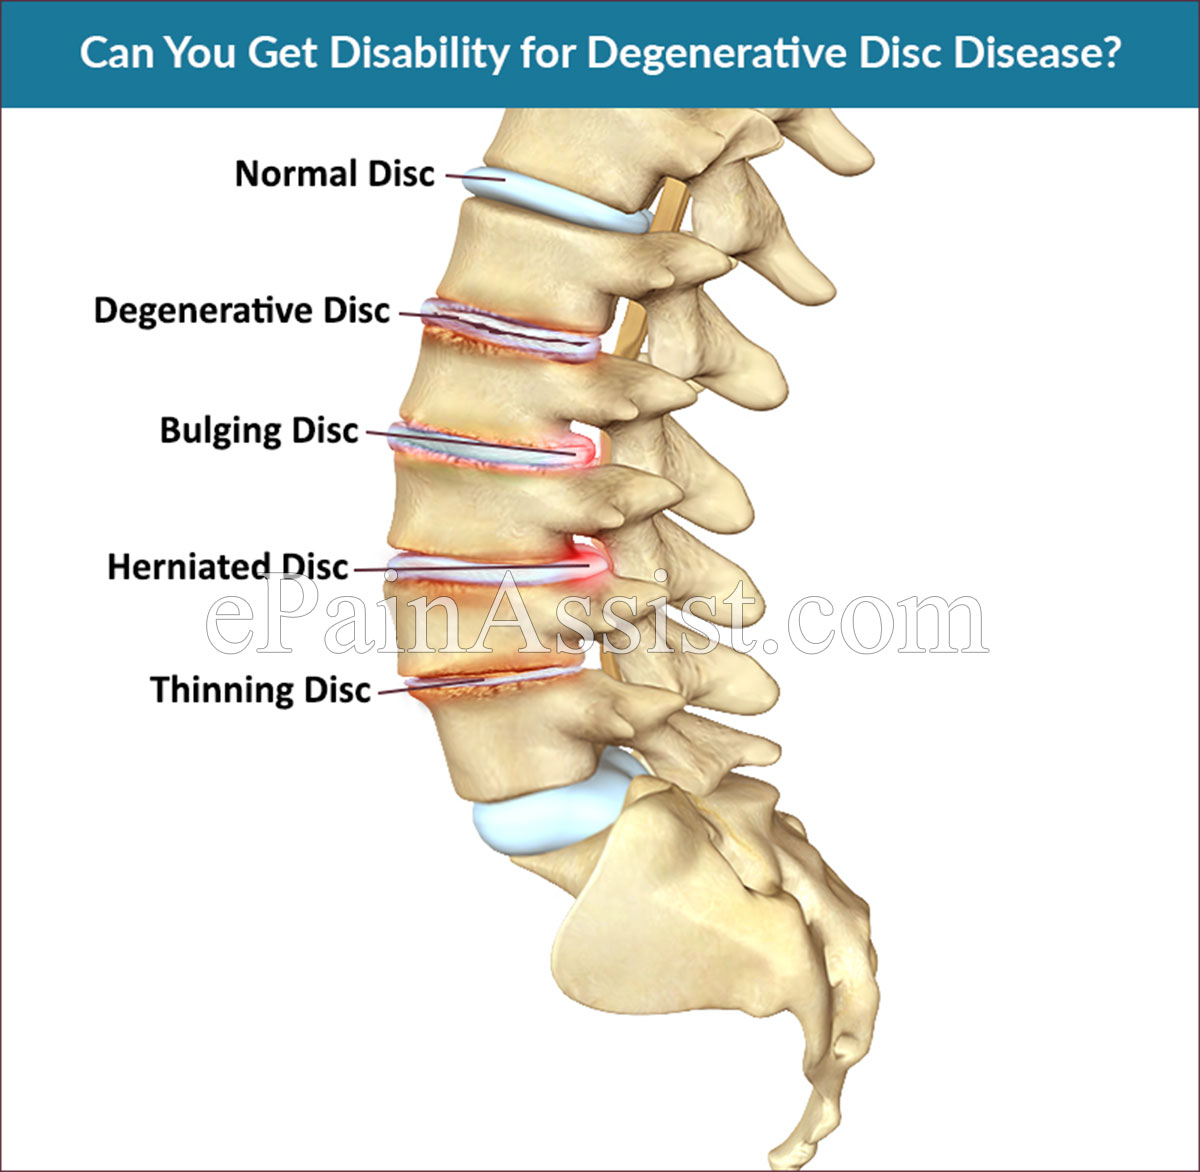 Can You Get Disability for Degenerative Disc Disease?